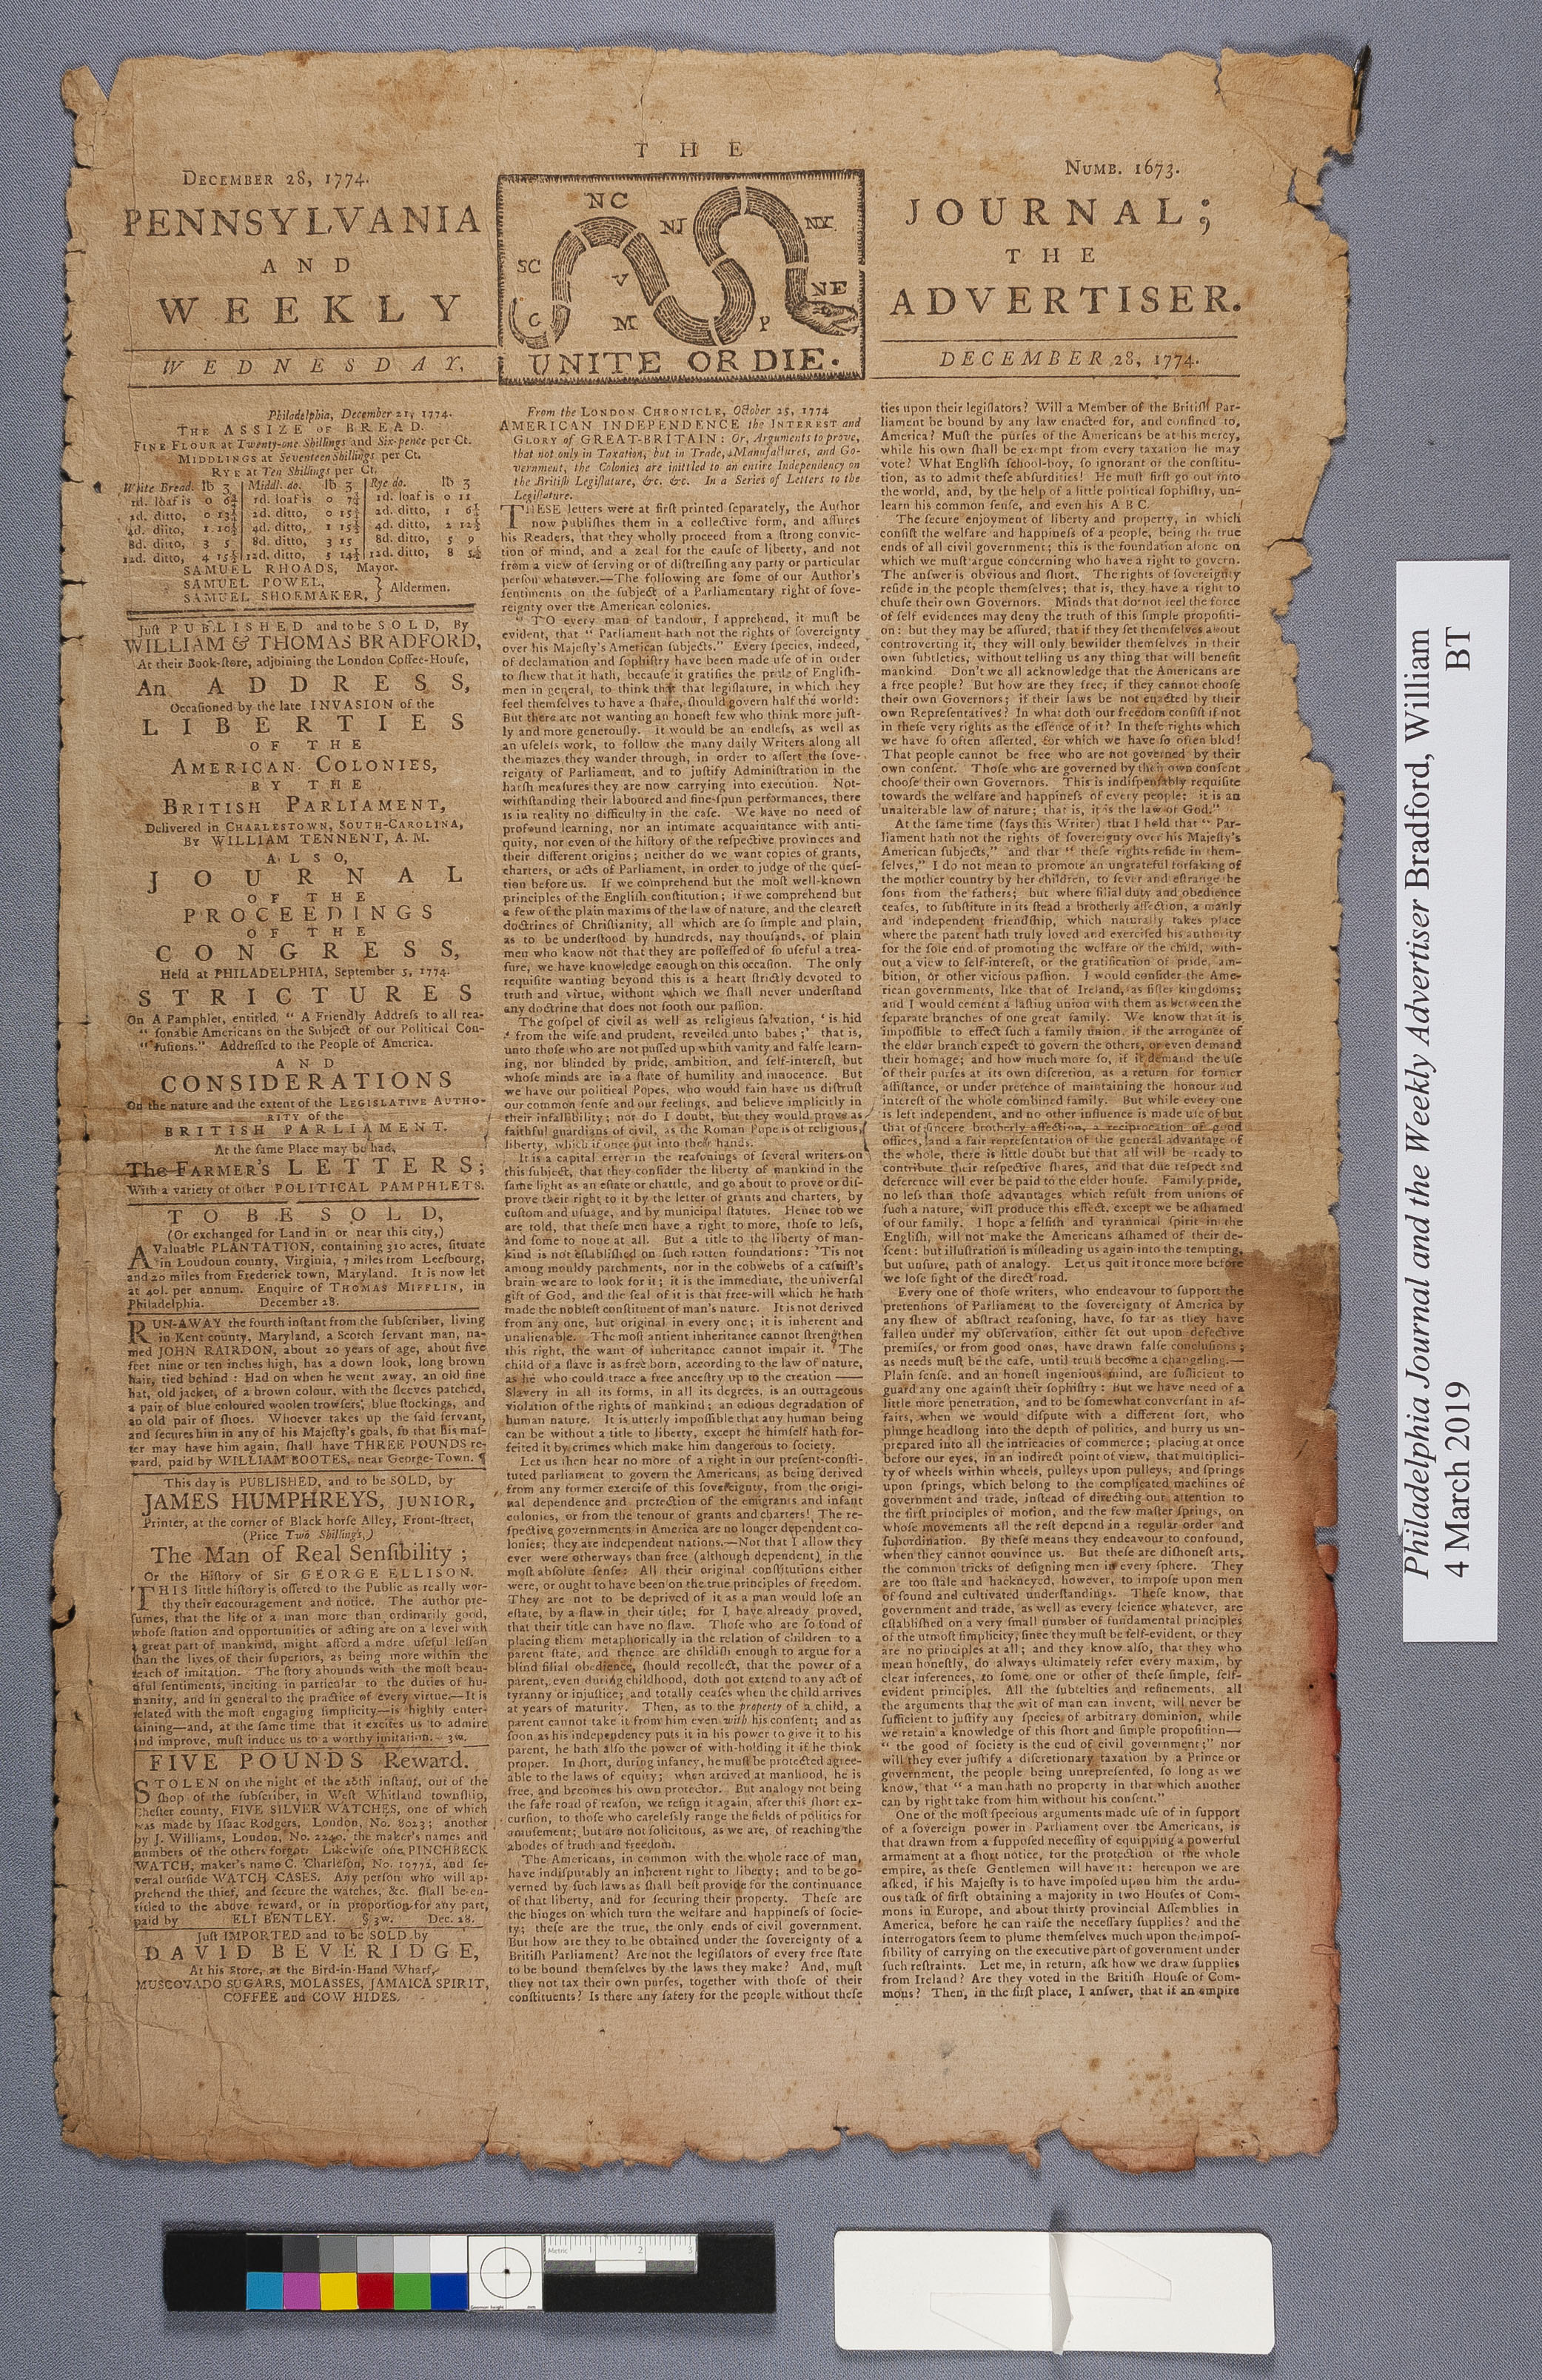 full view of newspaper with water damage